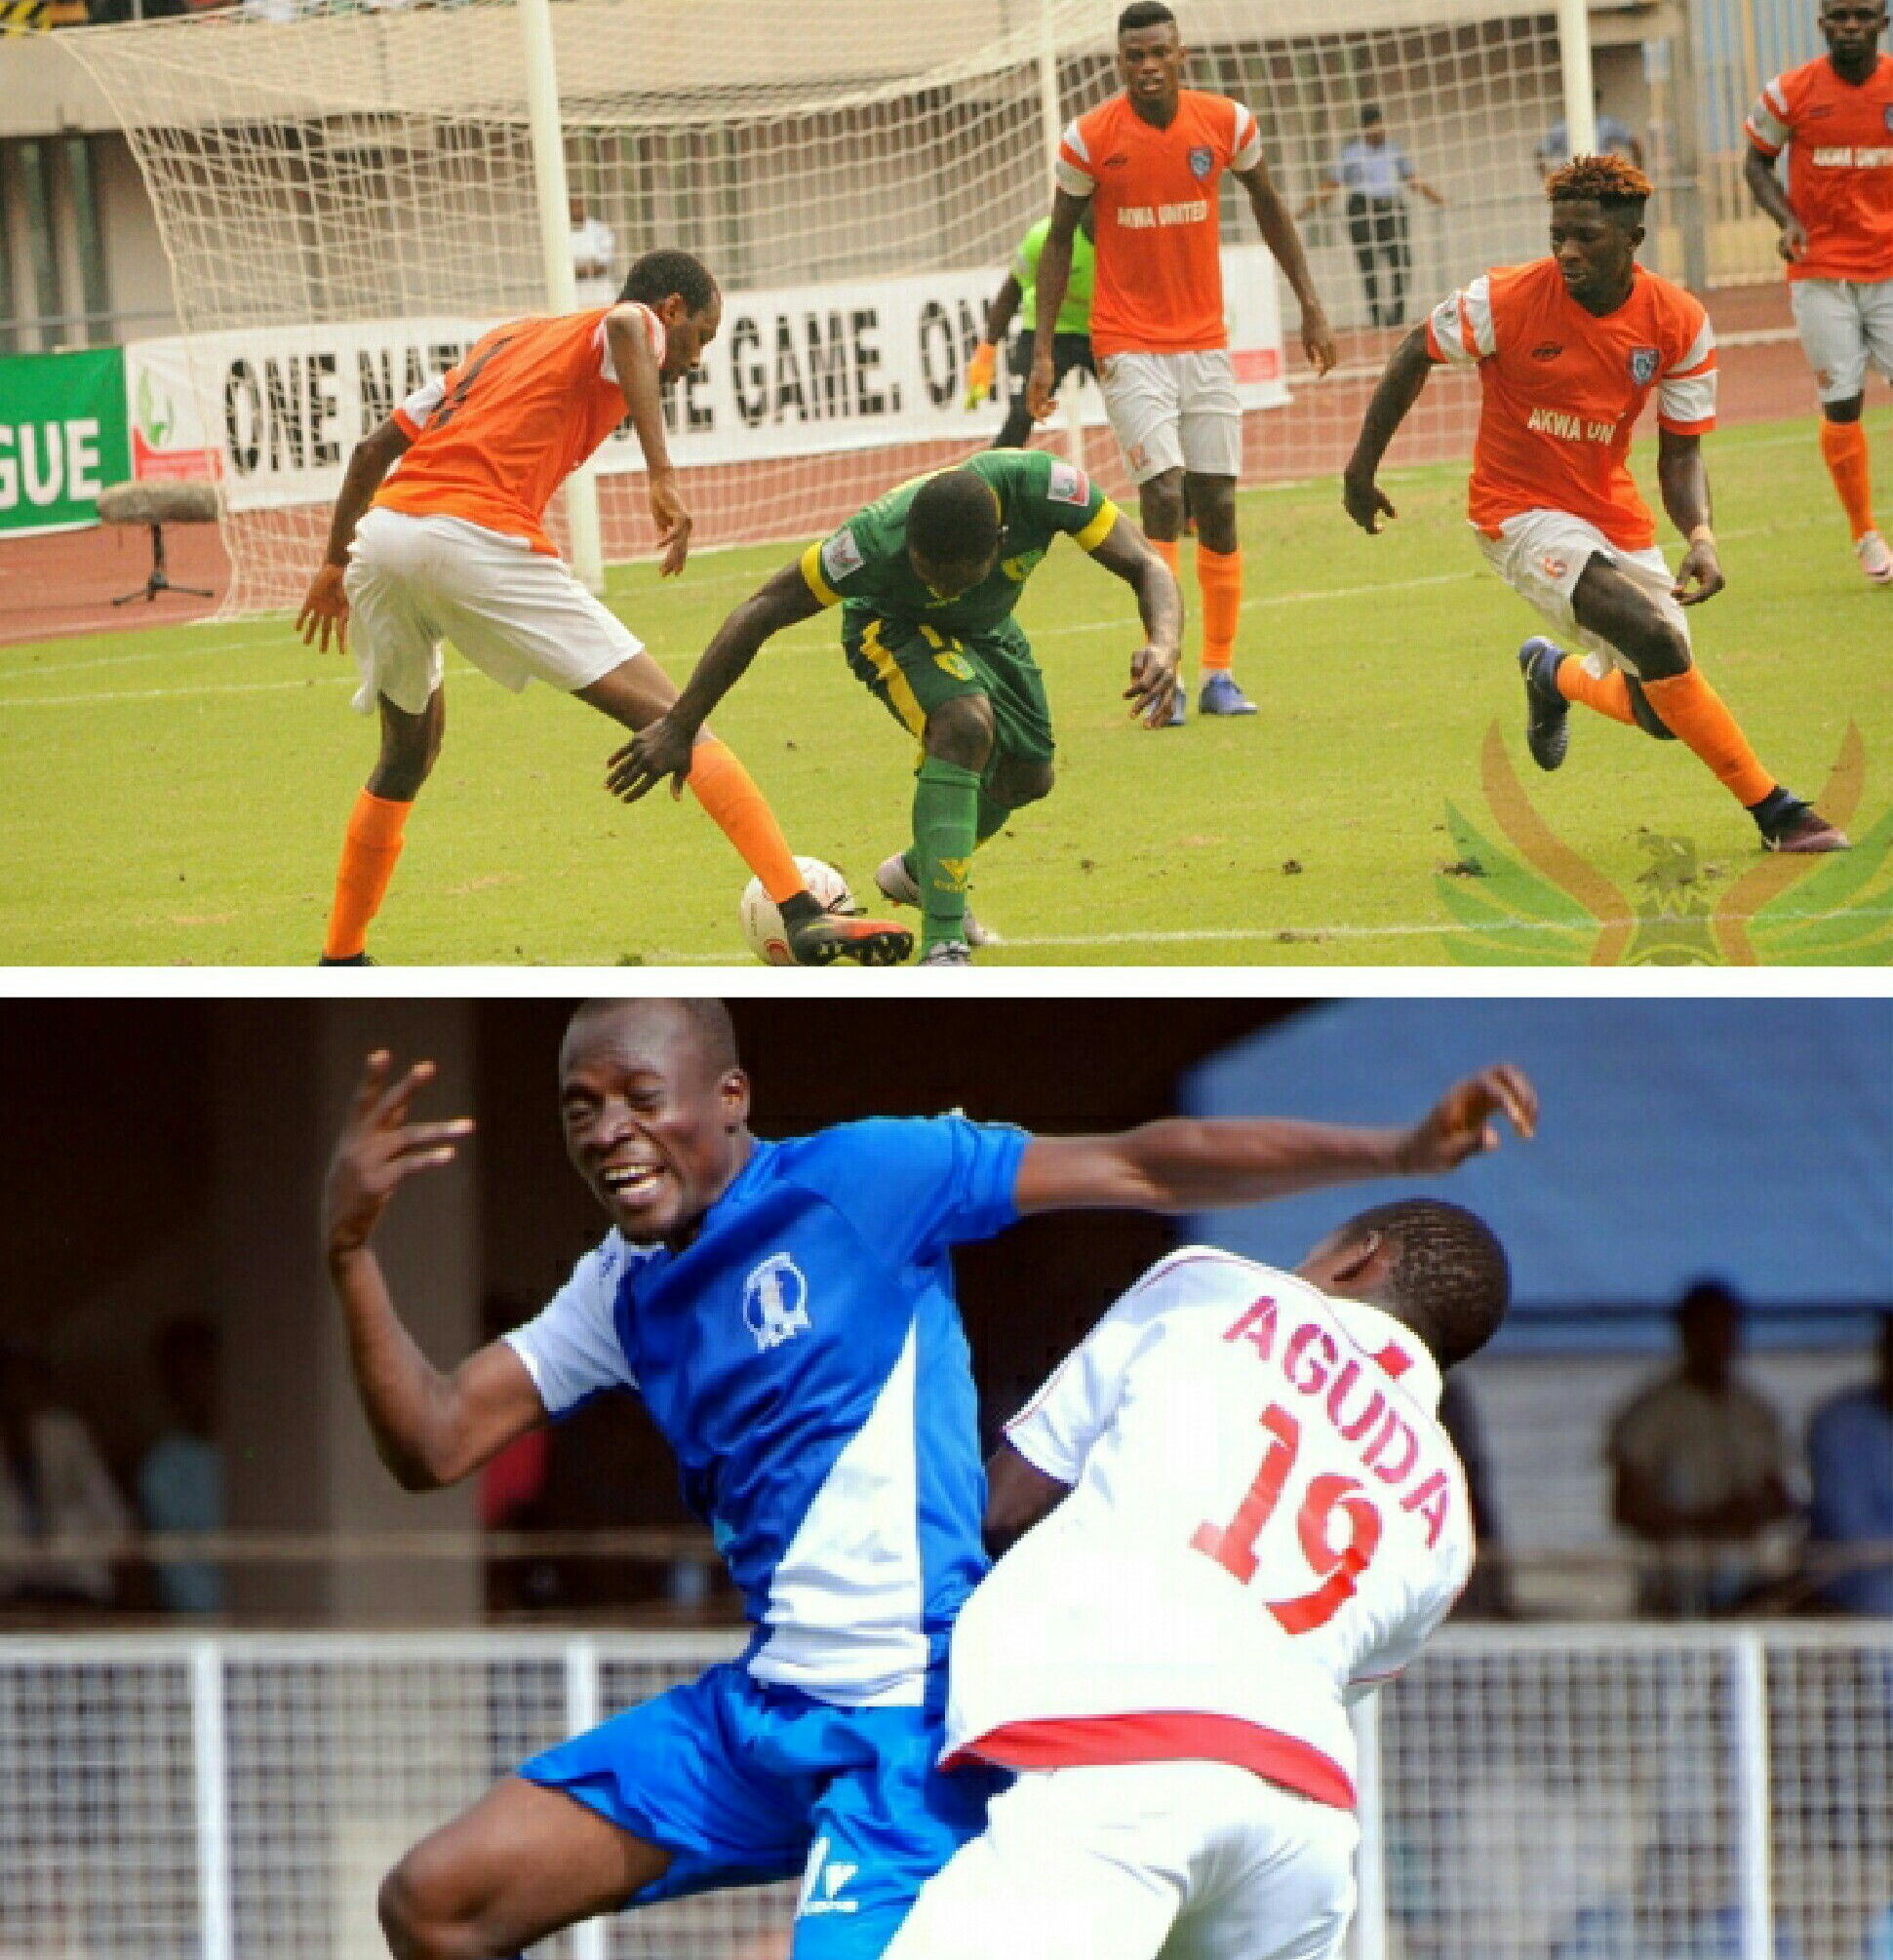 NPFL Matchday-28 Preview: Akwa Face Plateau At Jos Fortress; Rangers Host 3SC, Seek 10th Win Of The Season